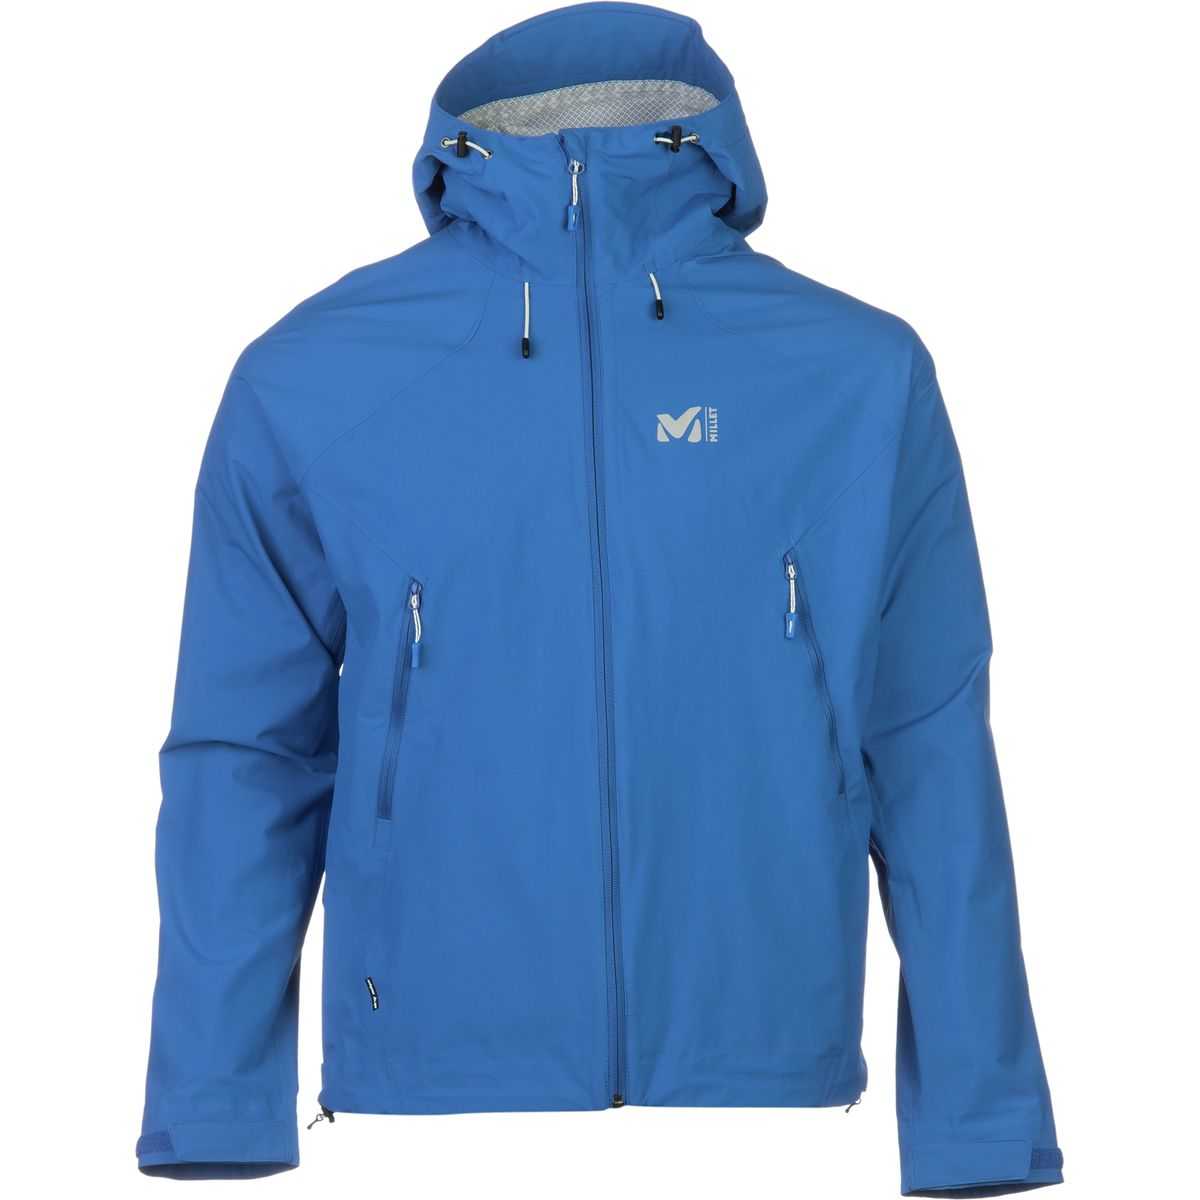 photo of a Millet outdoor clothing product